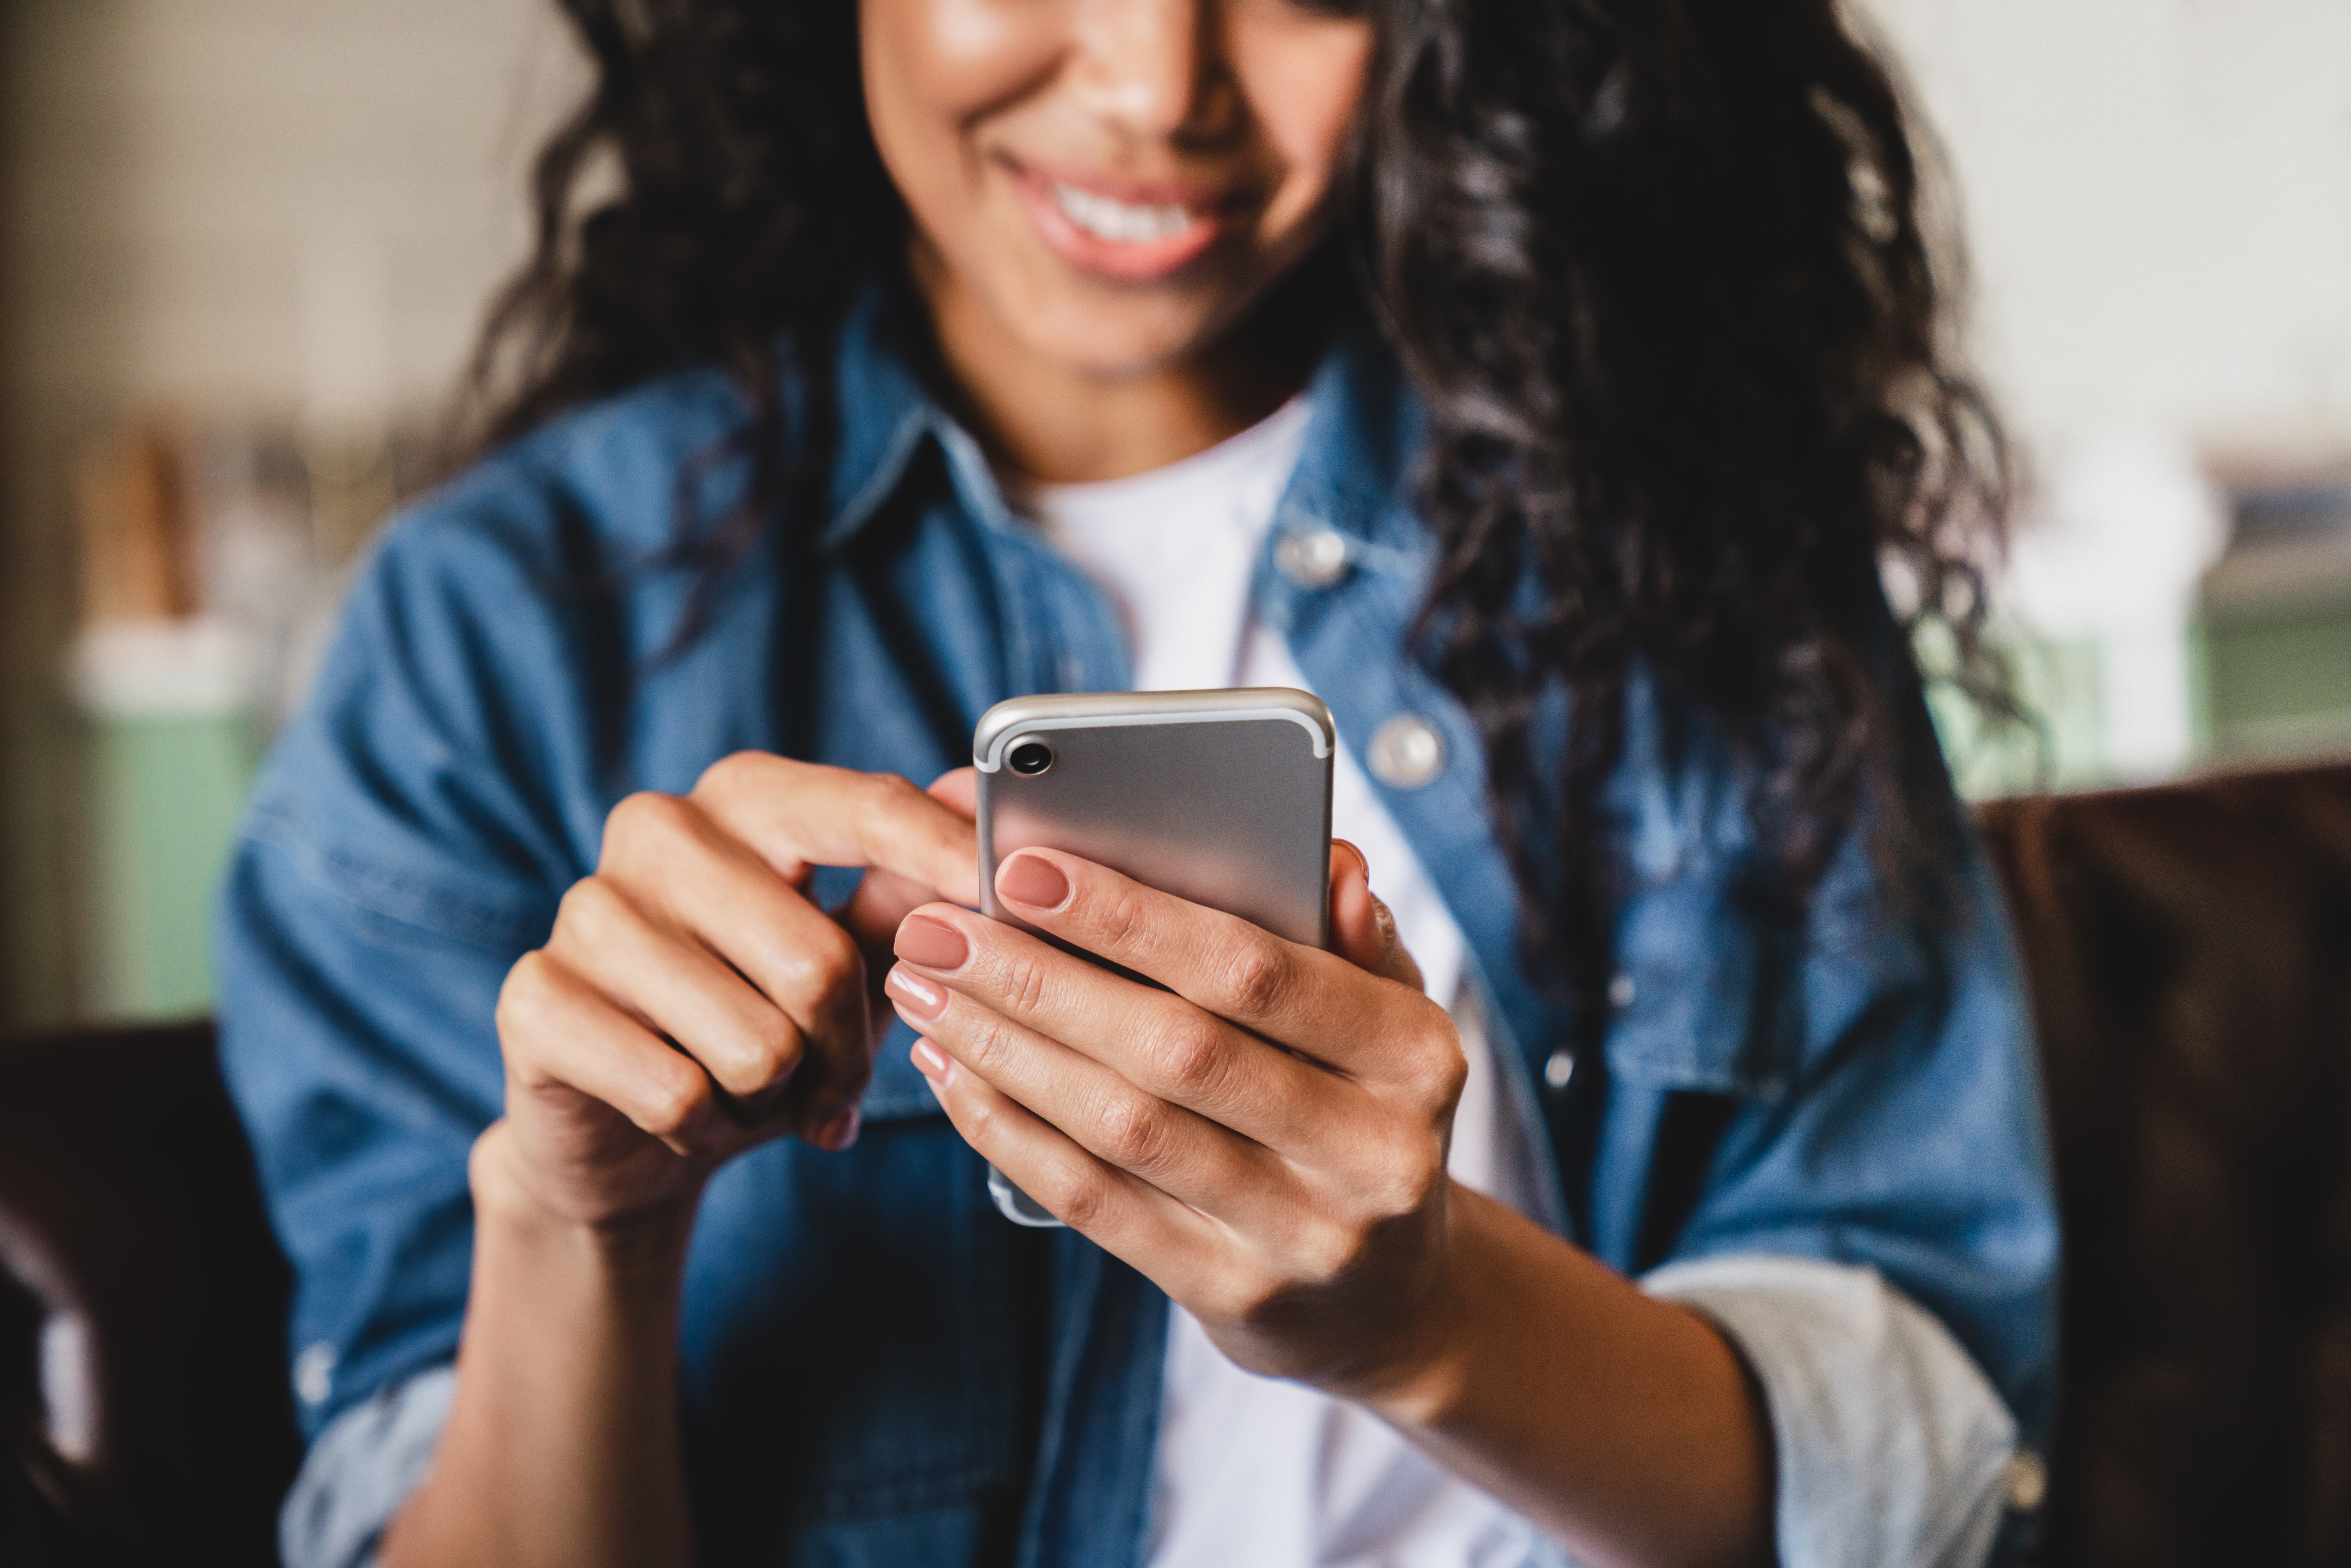 An immigrant looks at a language app on her phone.